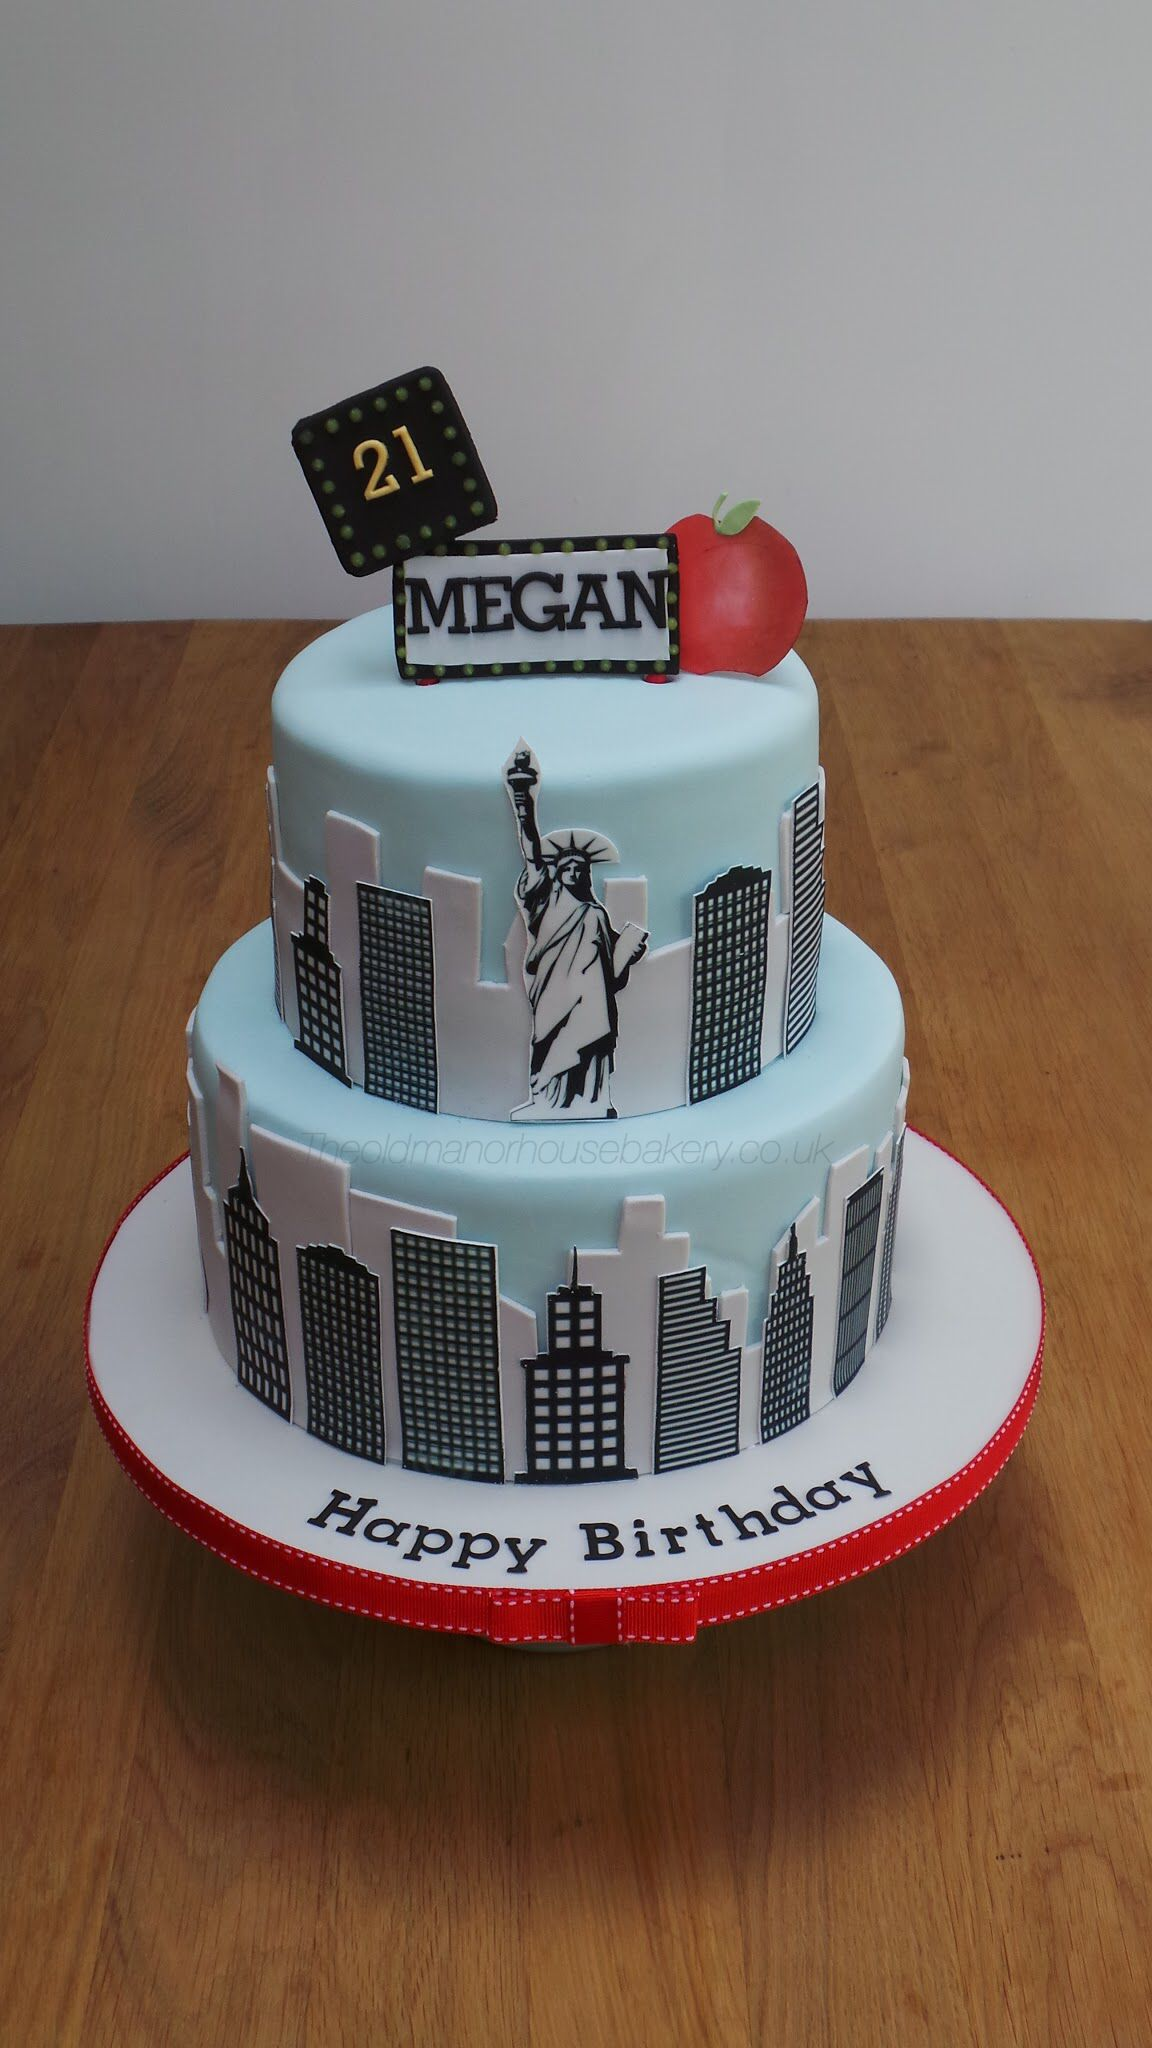 New York Skyline 21st Birthday Cake Theoldmanorhousebakerycouk Celebration Cakes Burton On Trent